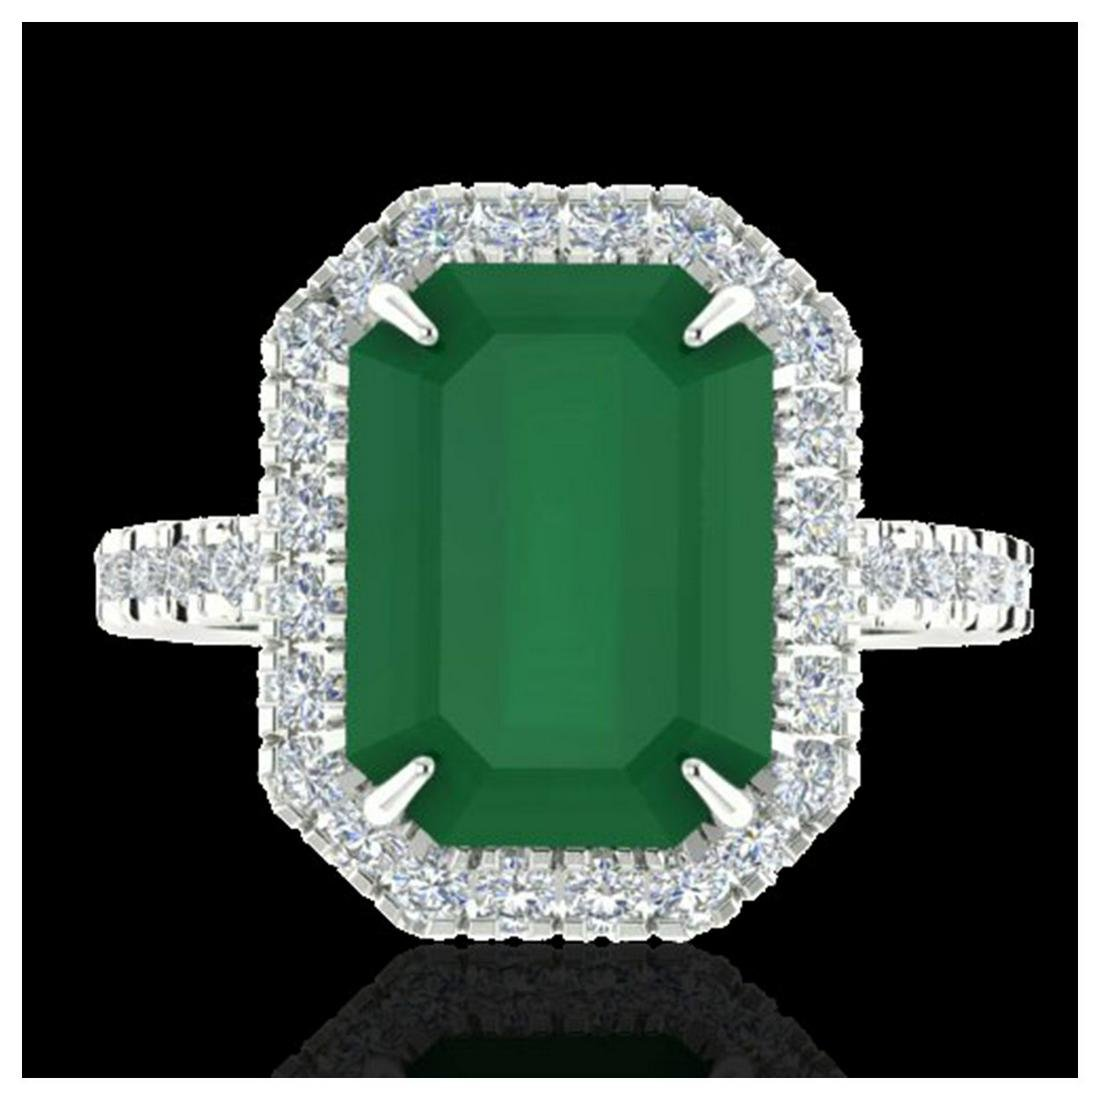 5.33 ctw Emerald And VS/SI Diamond Ring 18K White Gold